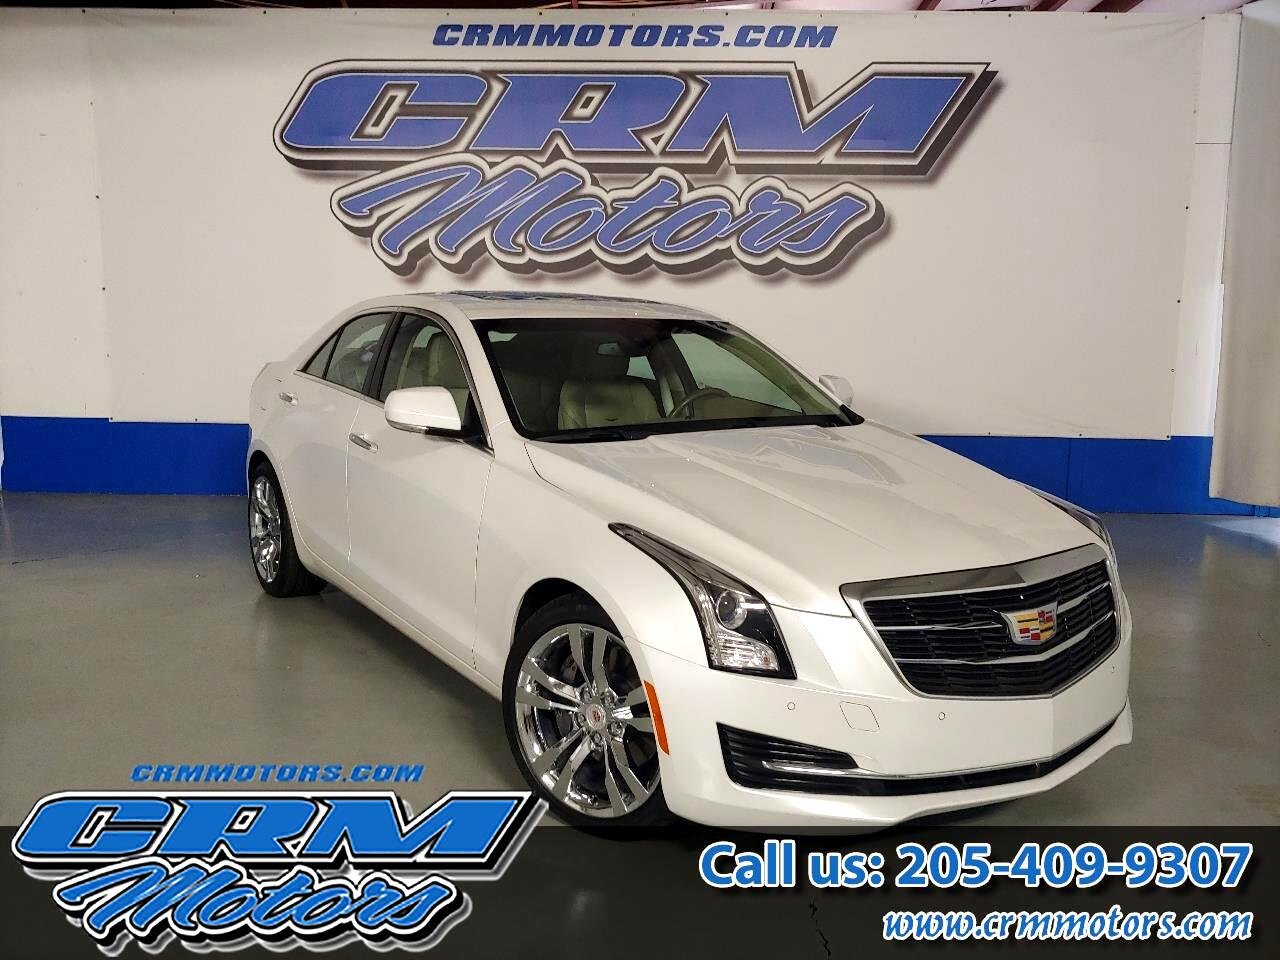 2016 Cadillac ATS Sedan 4dr Sdn 3.6L Luxury Collection RWD